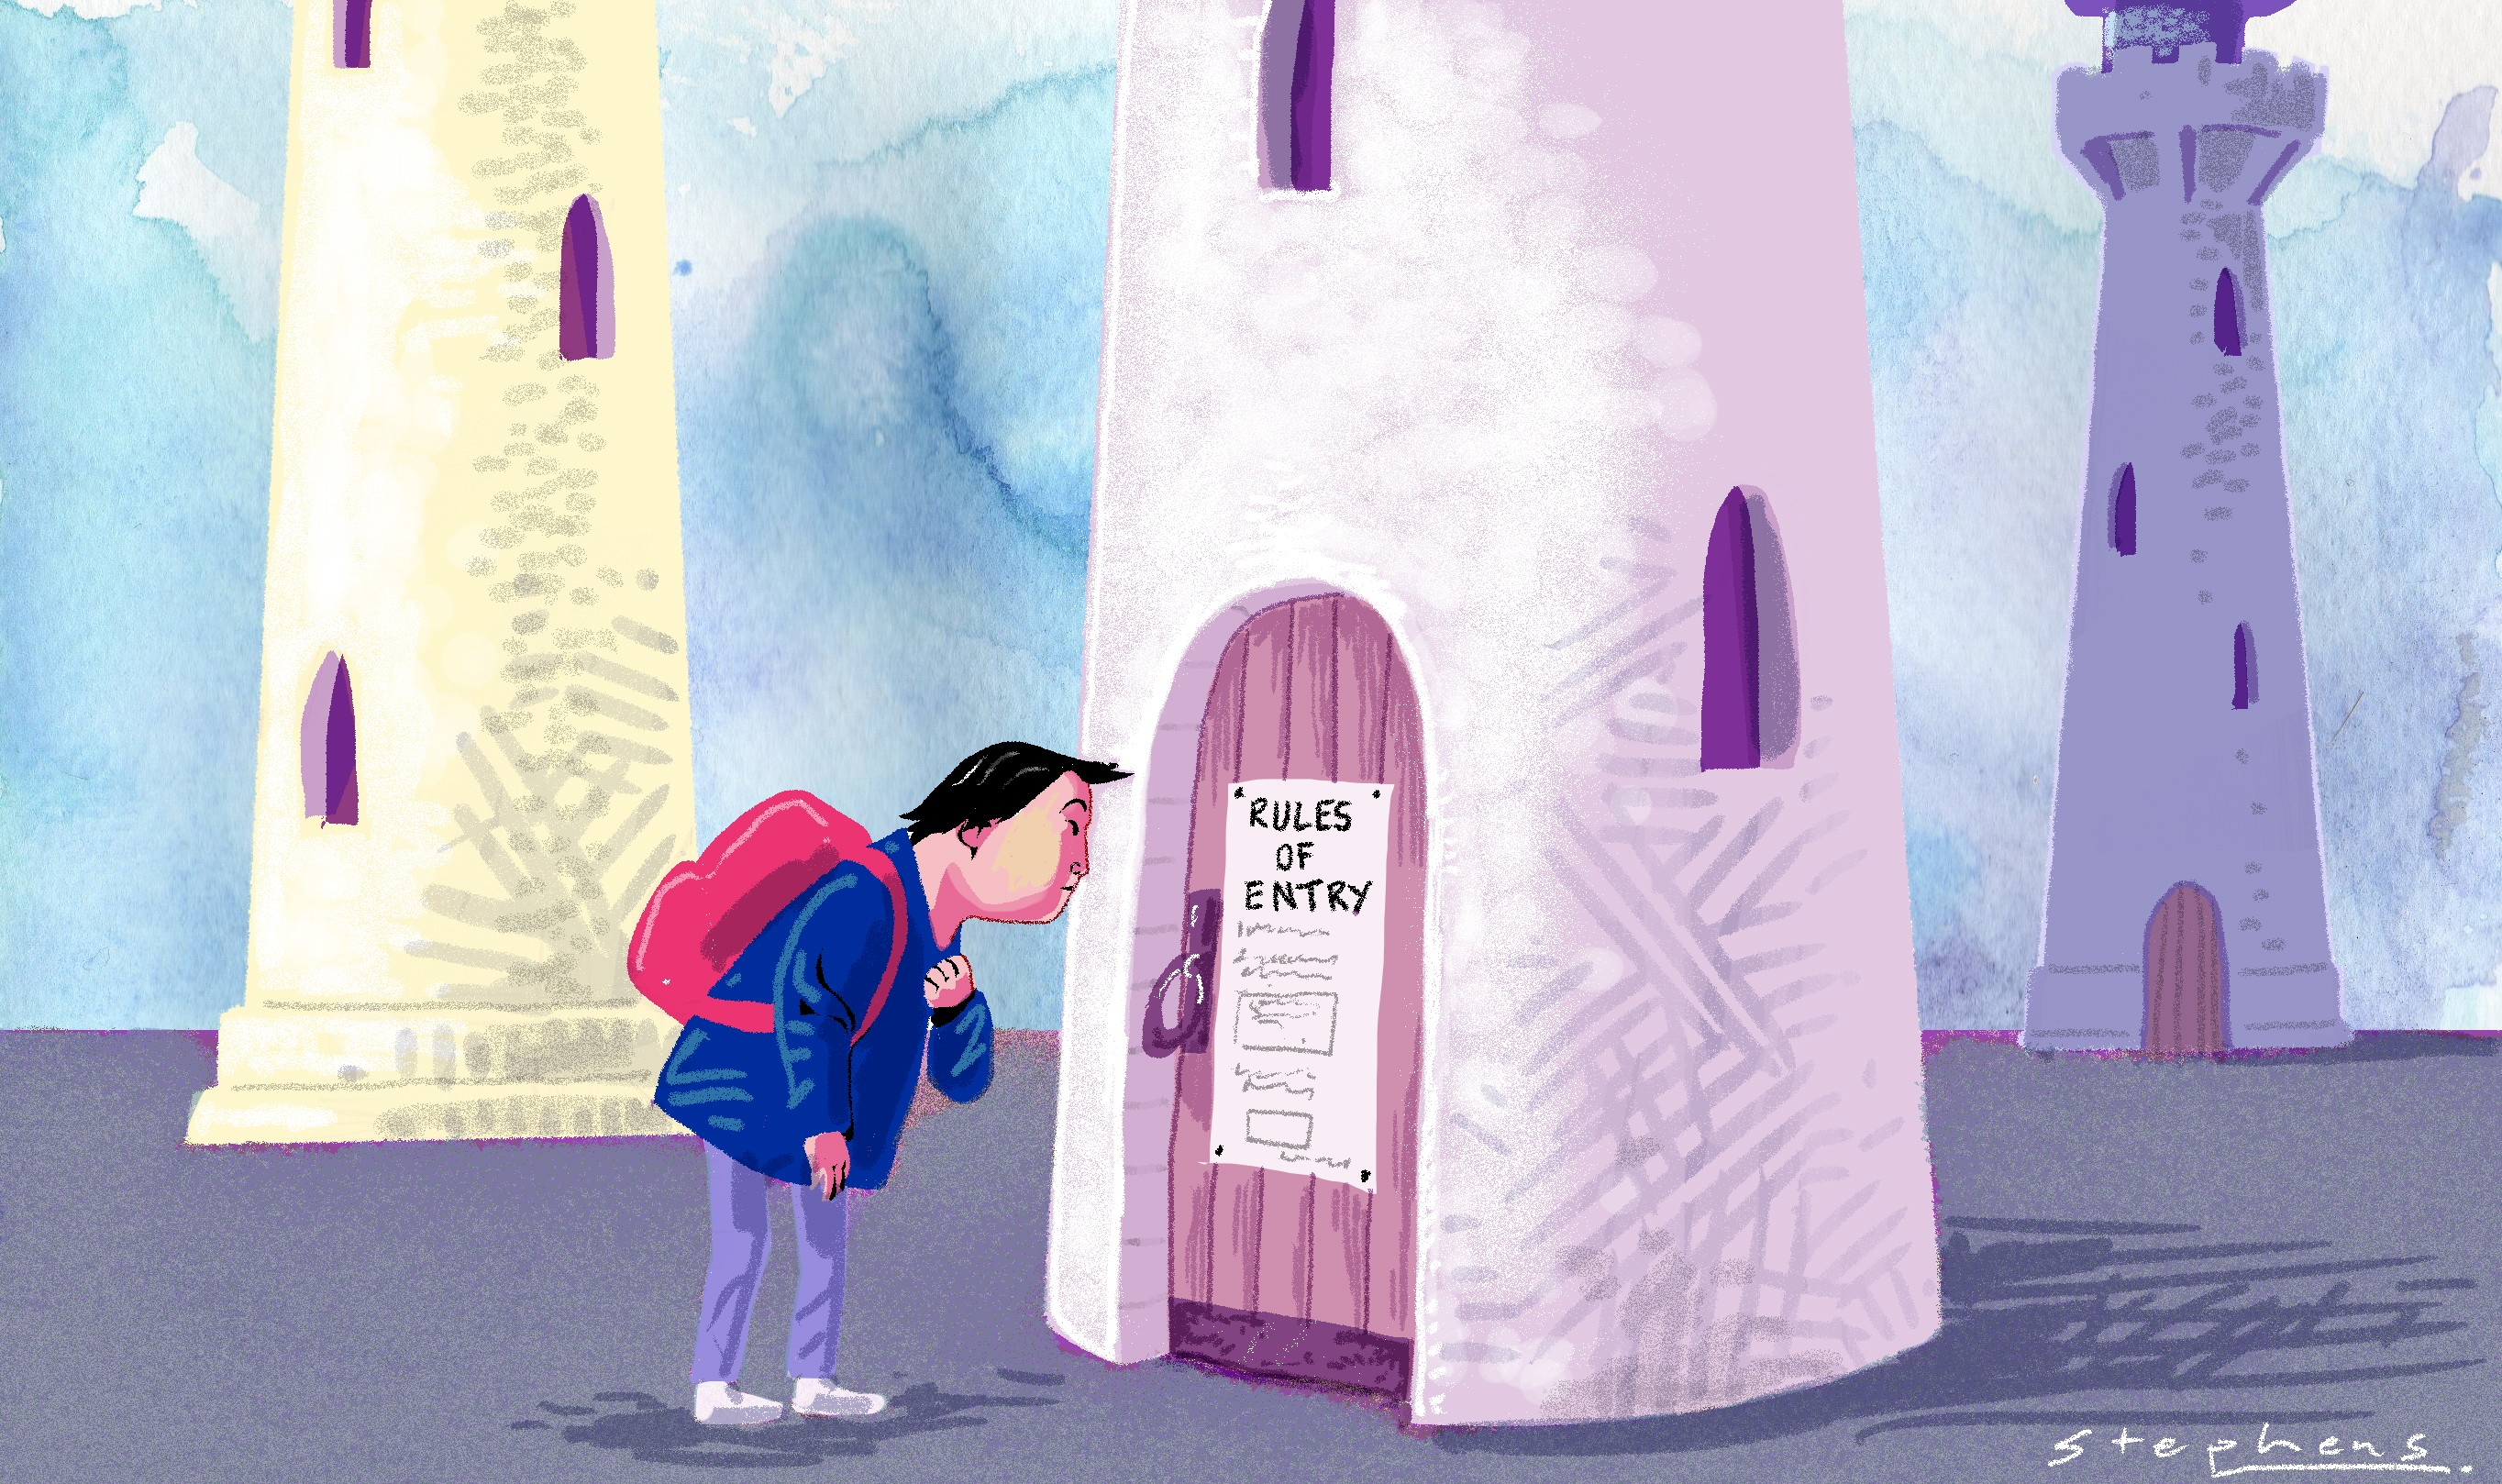 To assuage fear of Chinese scholars, US universities need to set